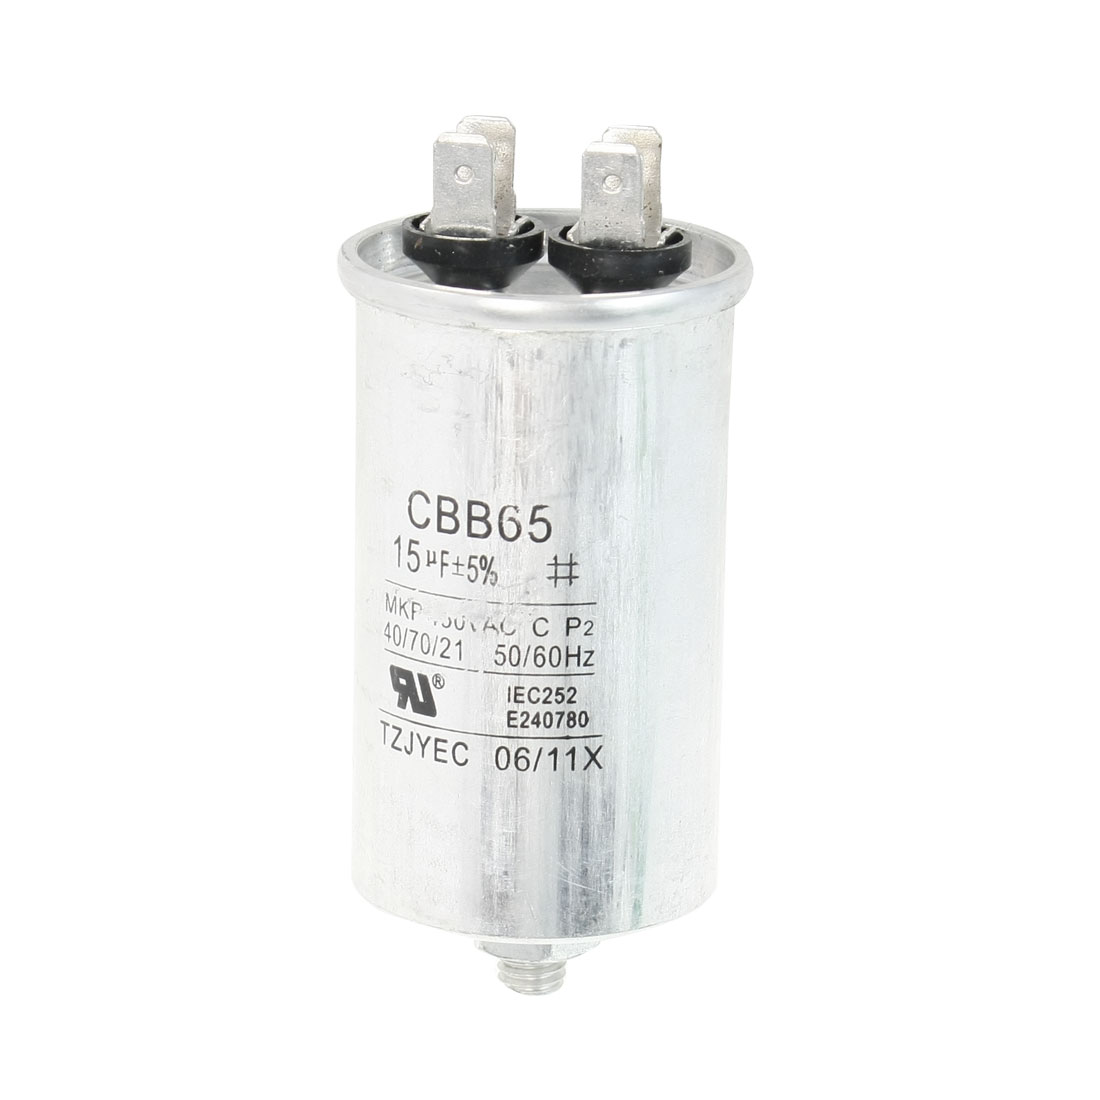 Air Conditioner AC 450V 15uF Cylindrical Motor Capacitor CBB65